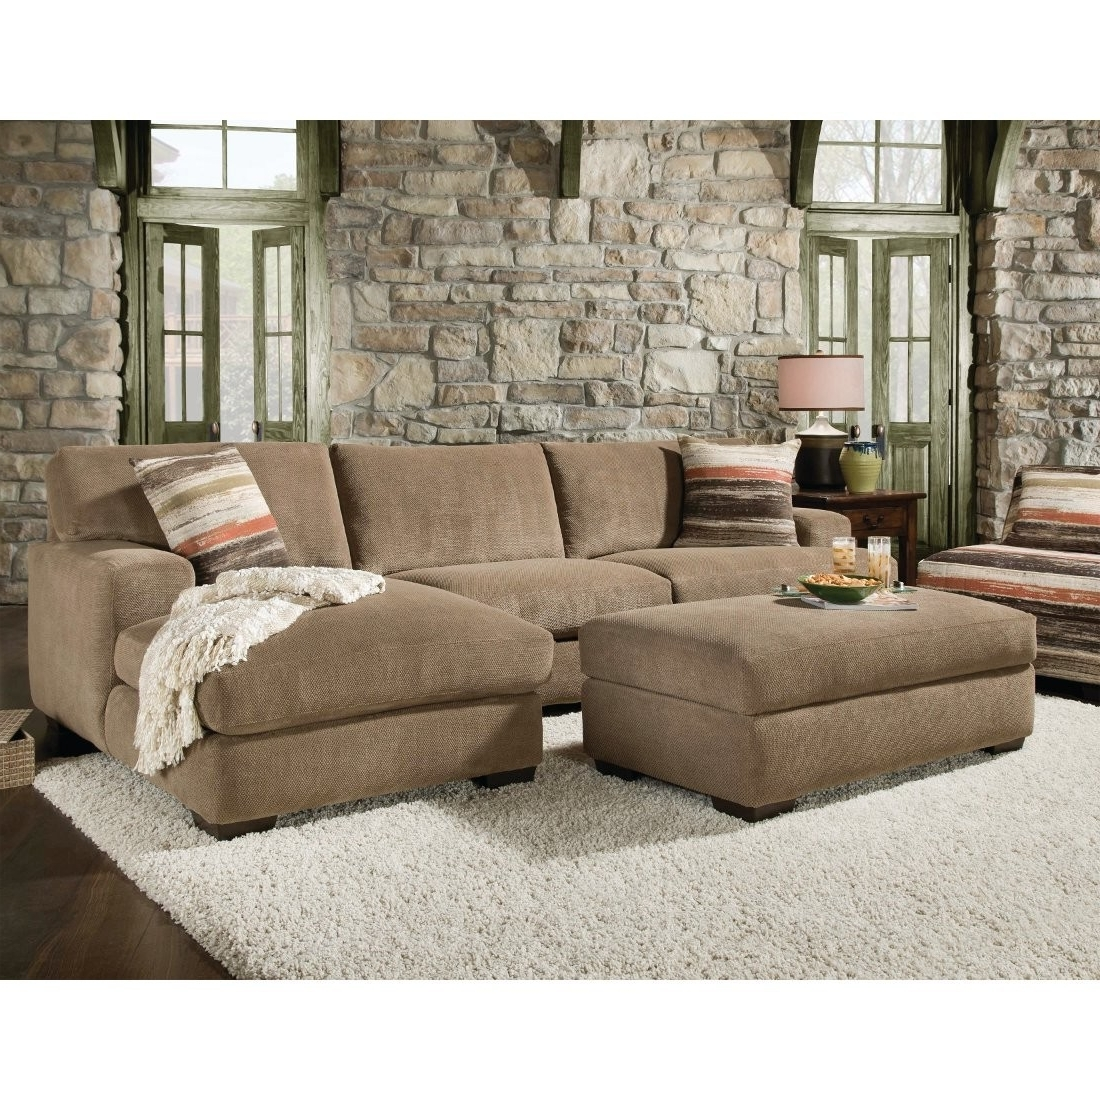 Sectionals With Ottoman And Chaise Regarding Latest Beautiful Sectional Sofa With Chaise And Ottoman Pictures (View 10 of 15)